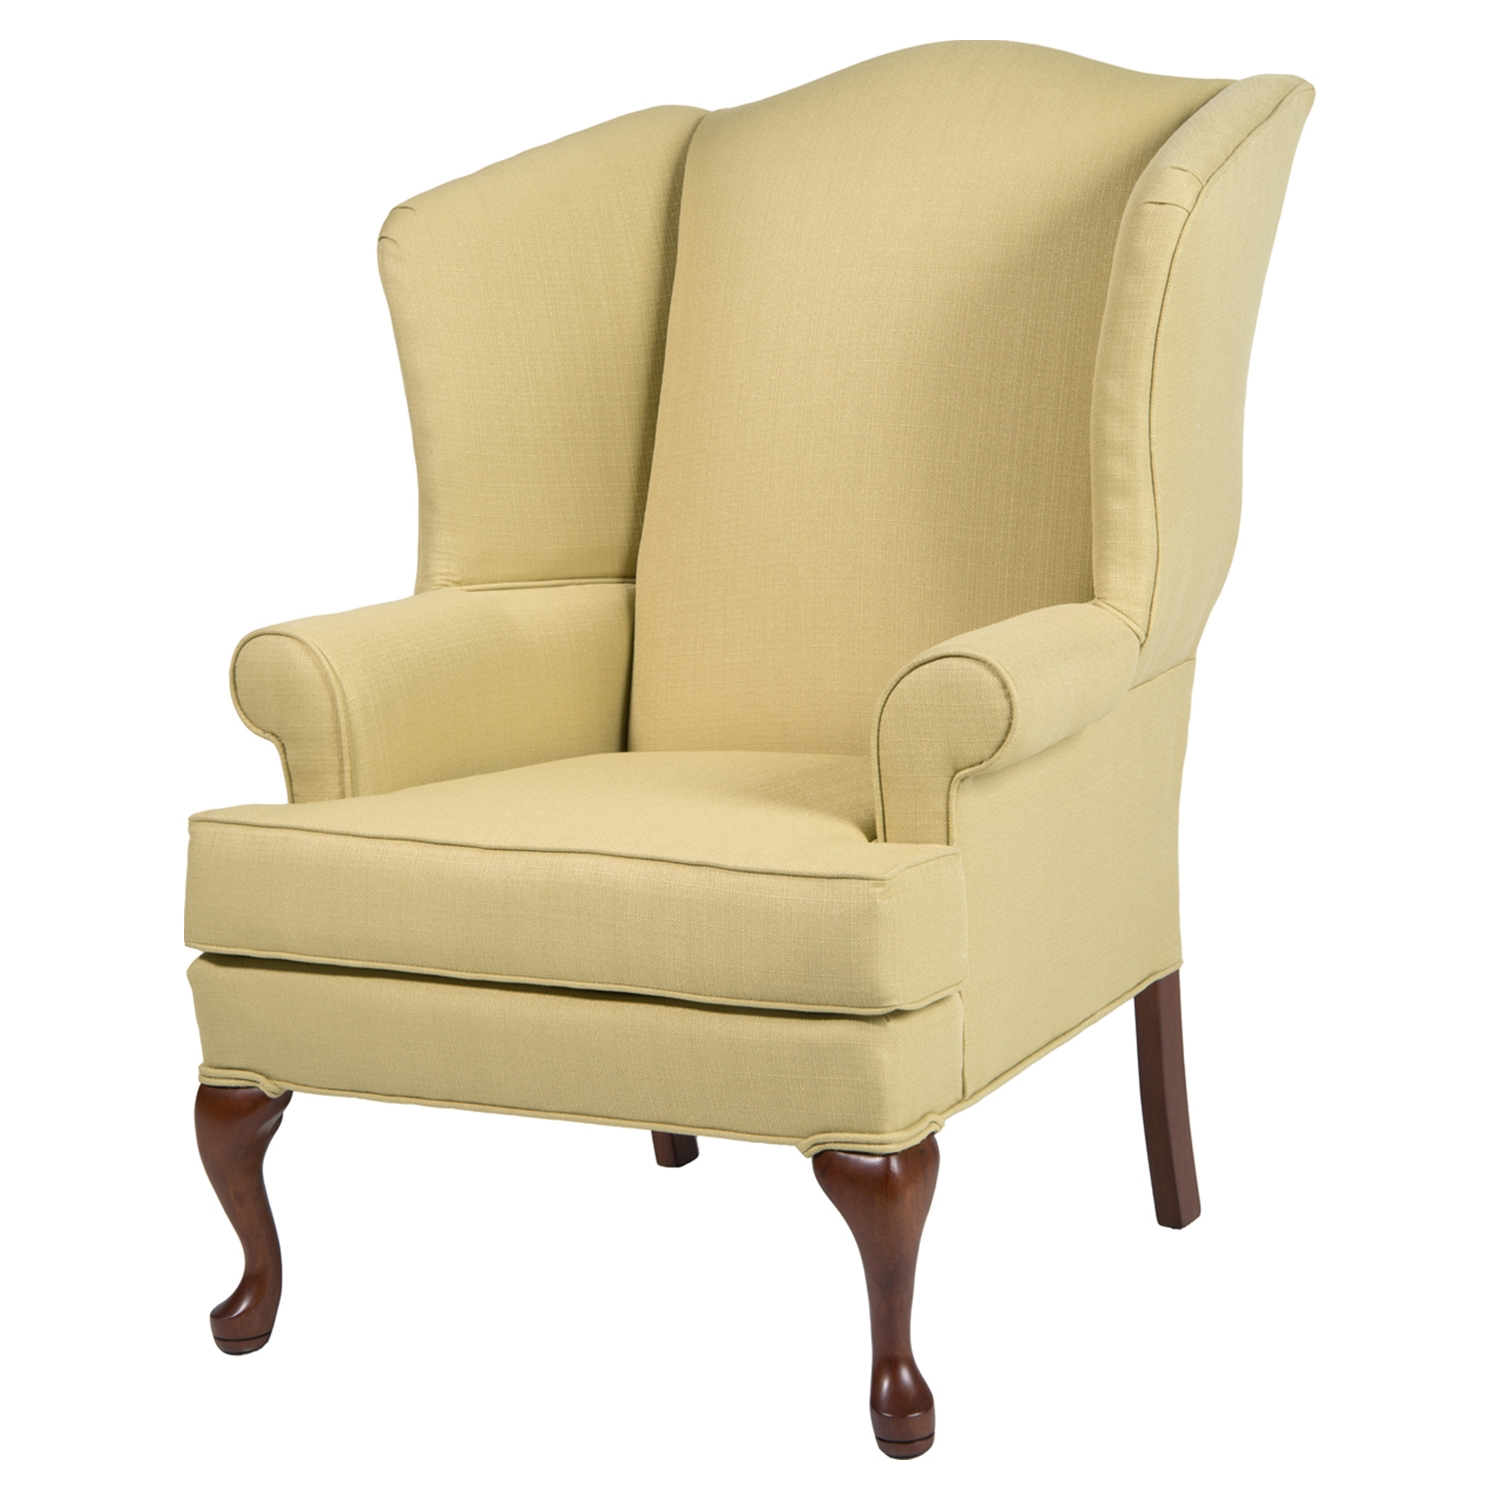 Erin Wingback Chair - Yellow, Cherry